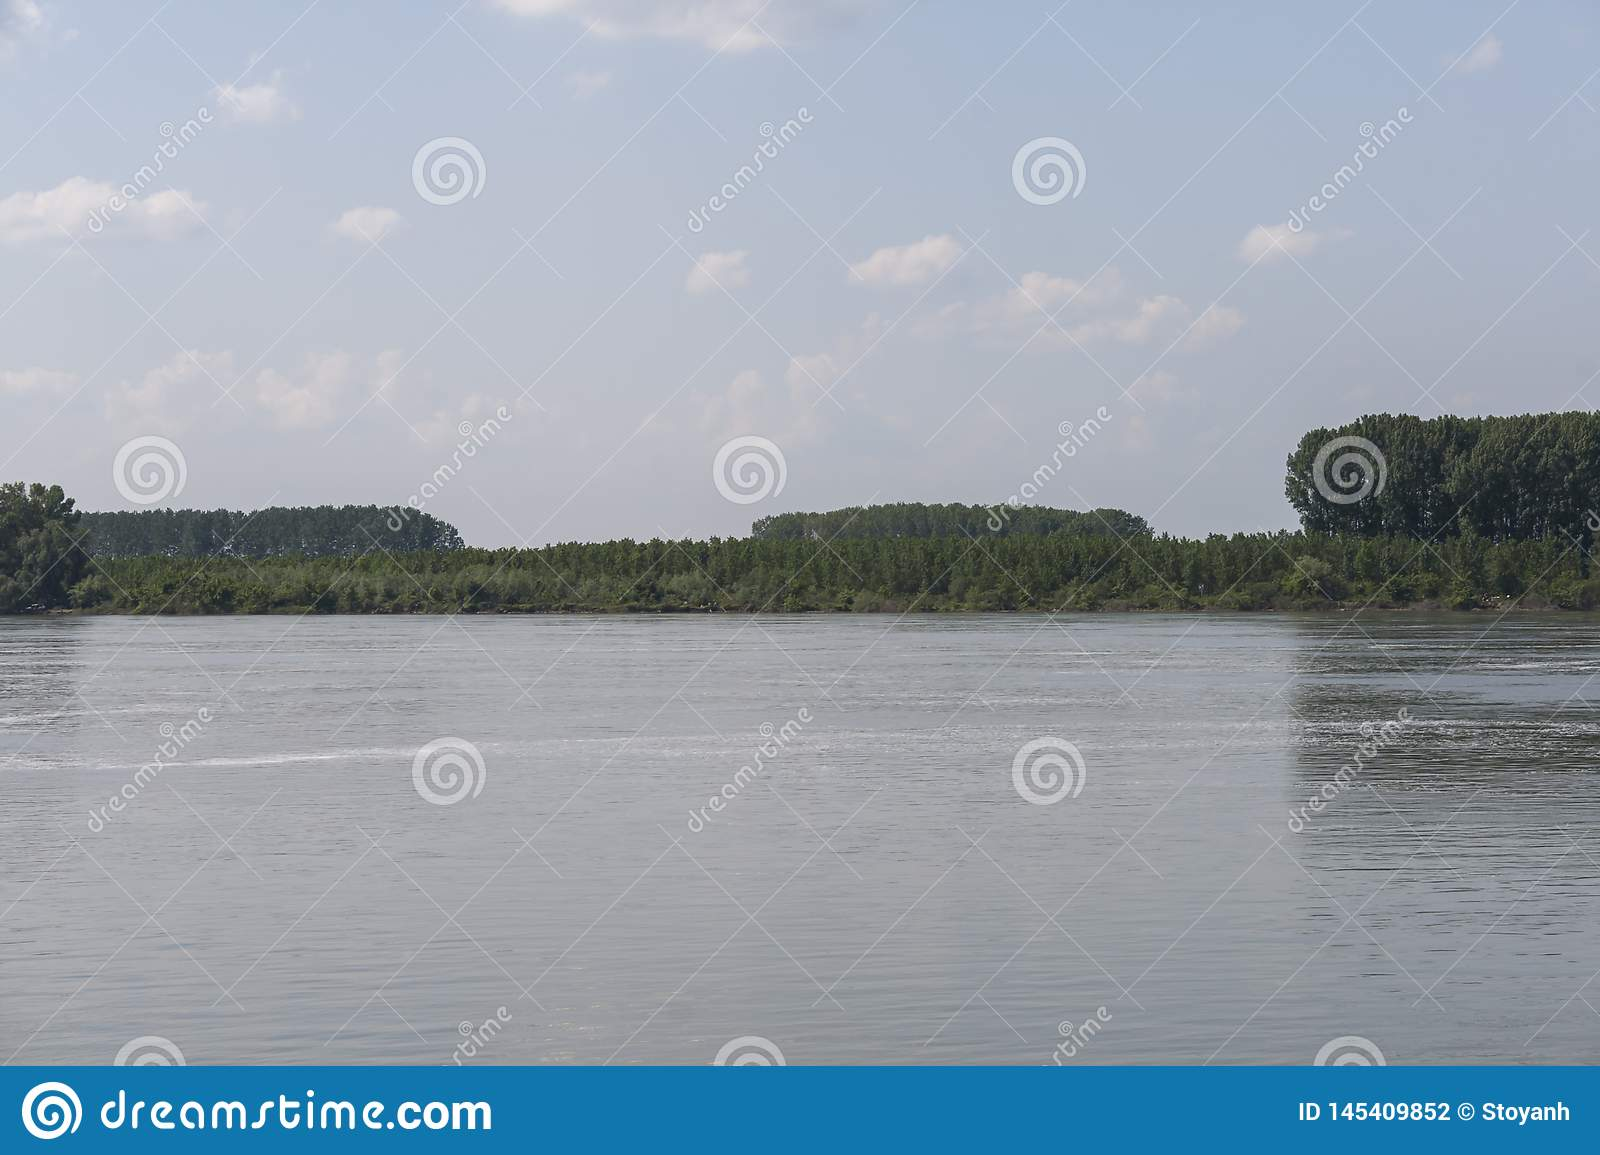 Danube River, passing through the town of Silistra, Bulgaria